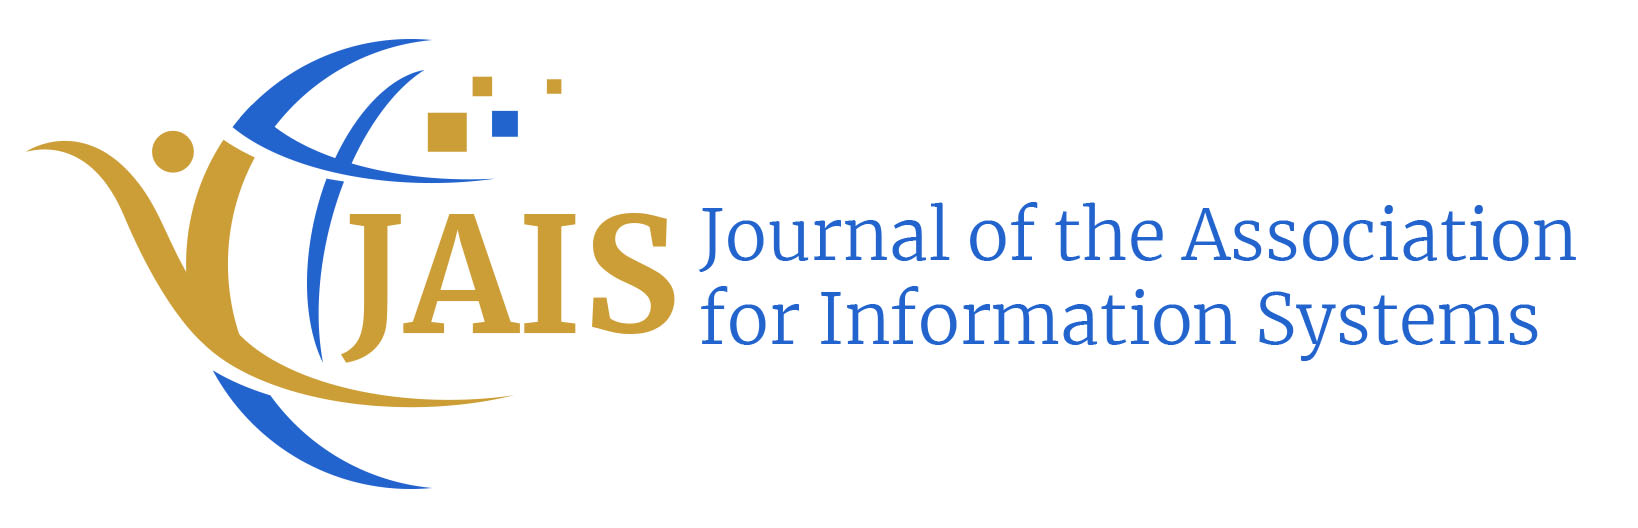 Journal Of The Association For Information Systems Ais Journals Association For Information Systems